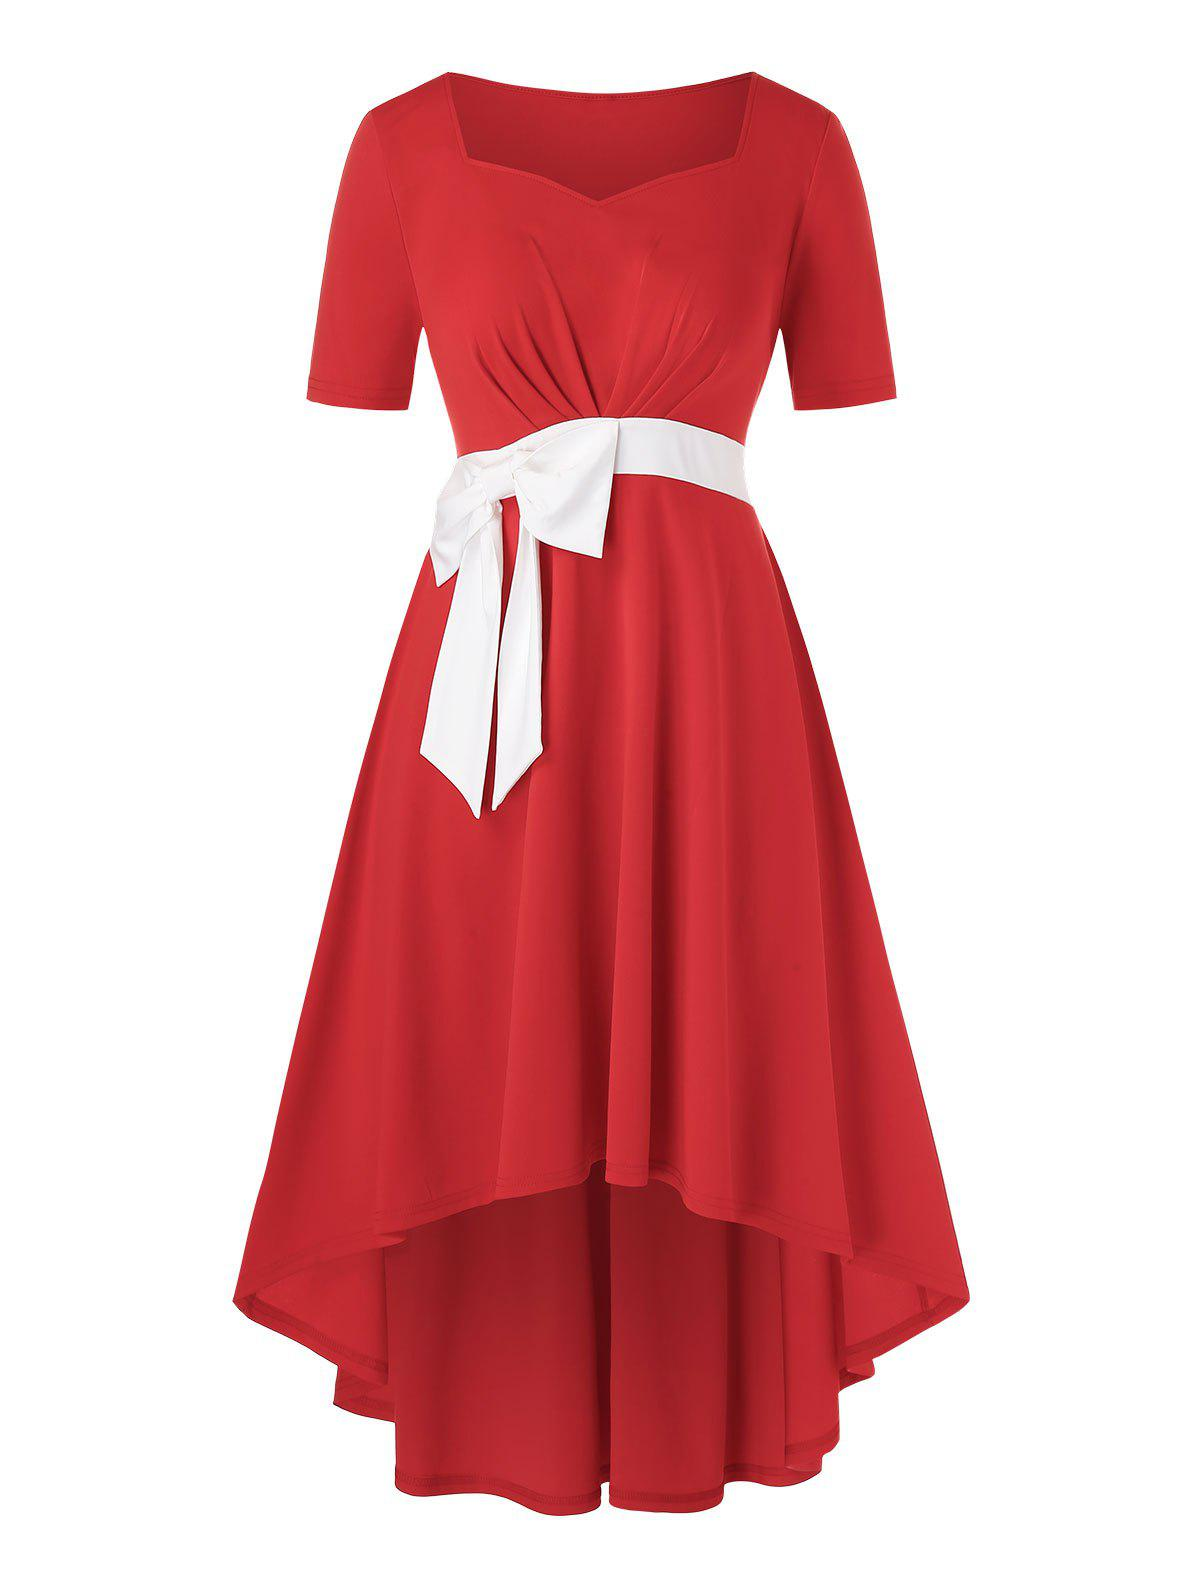 Plus Size Bowknot High Low Dress - RED L